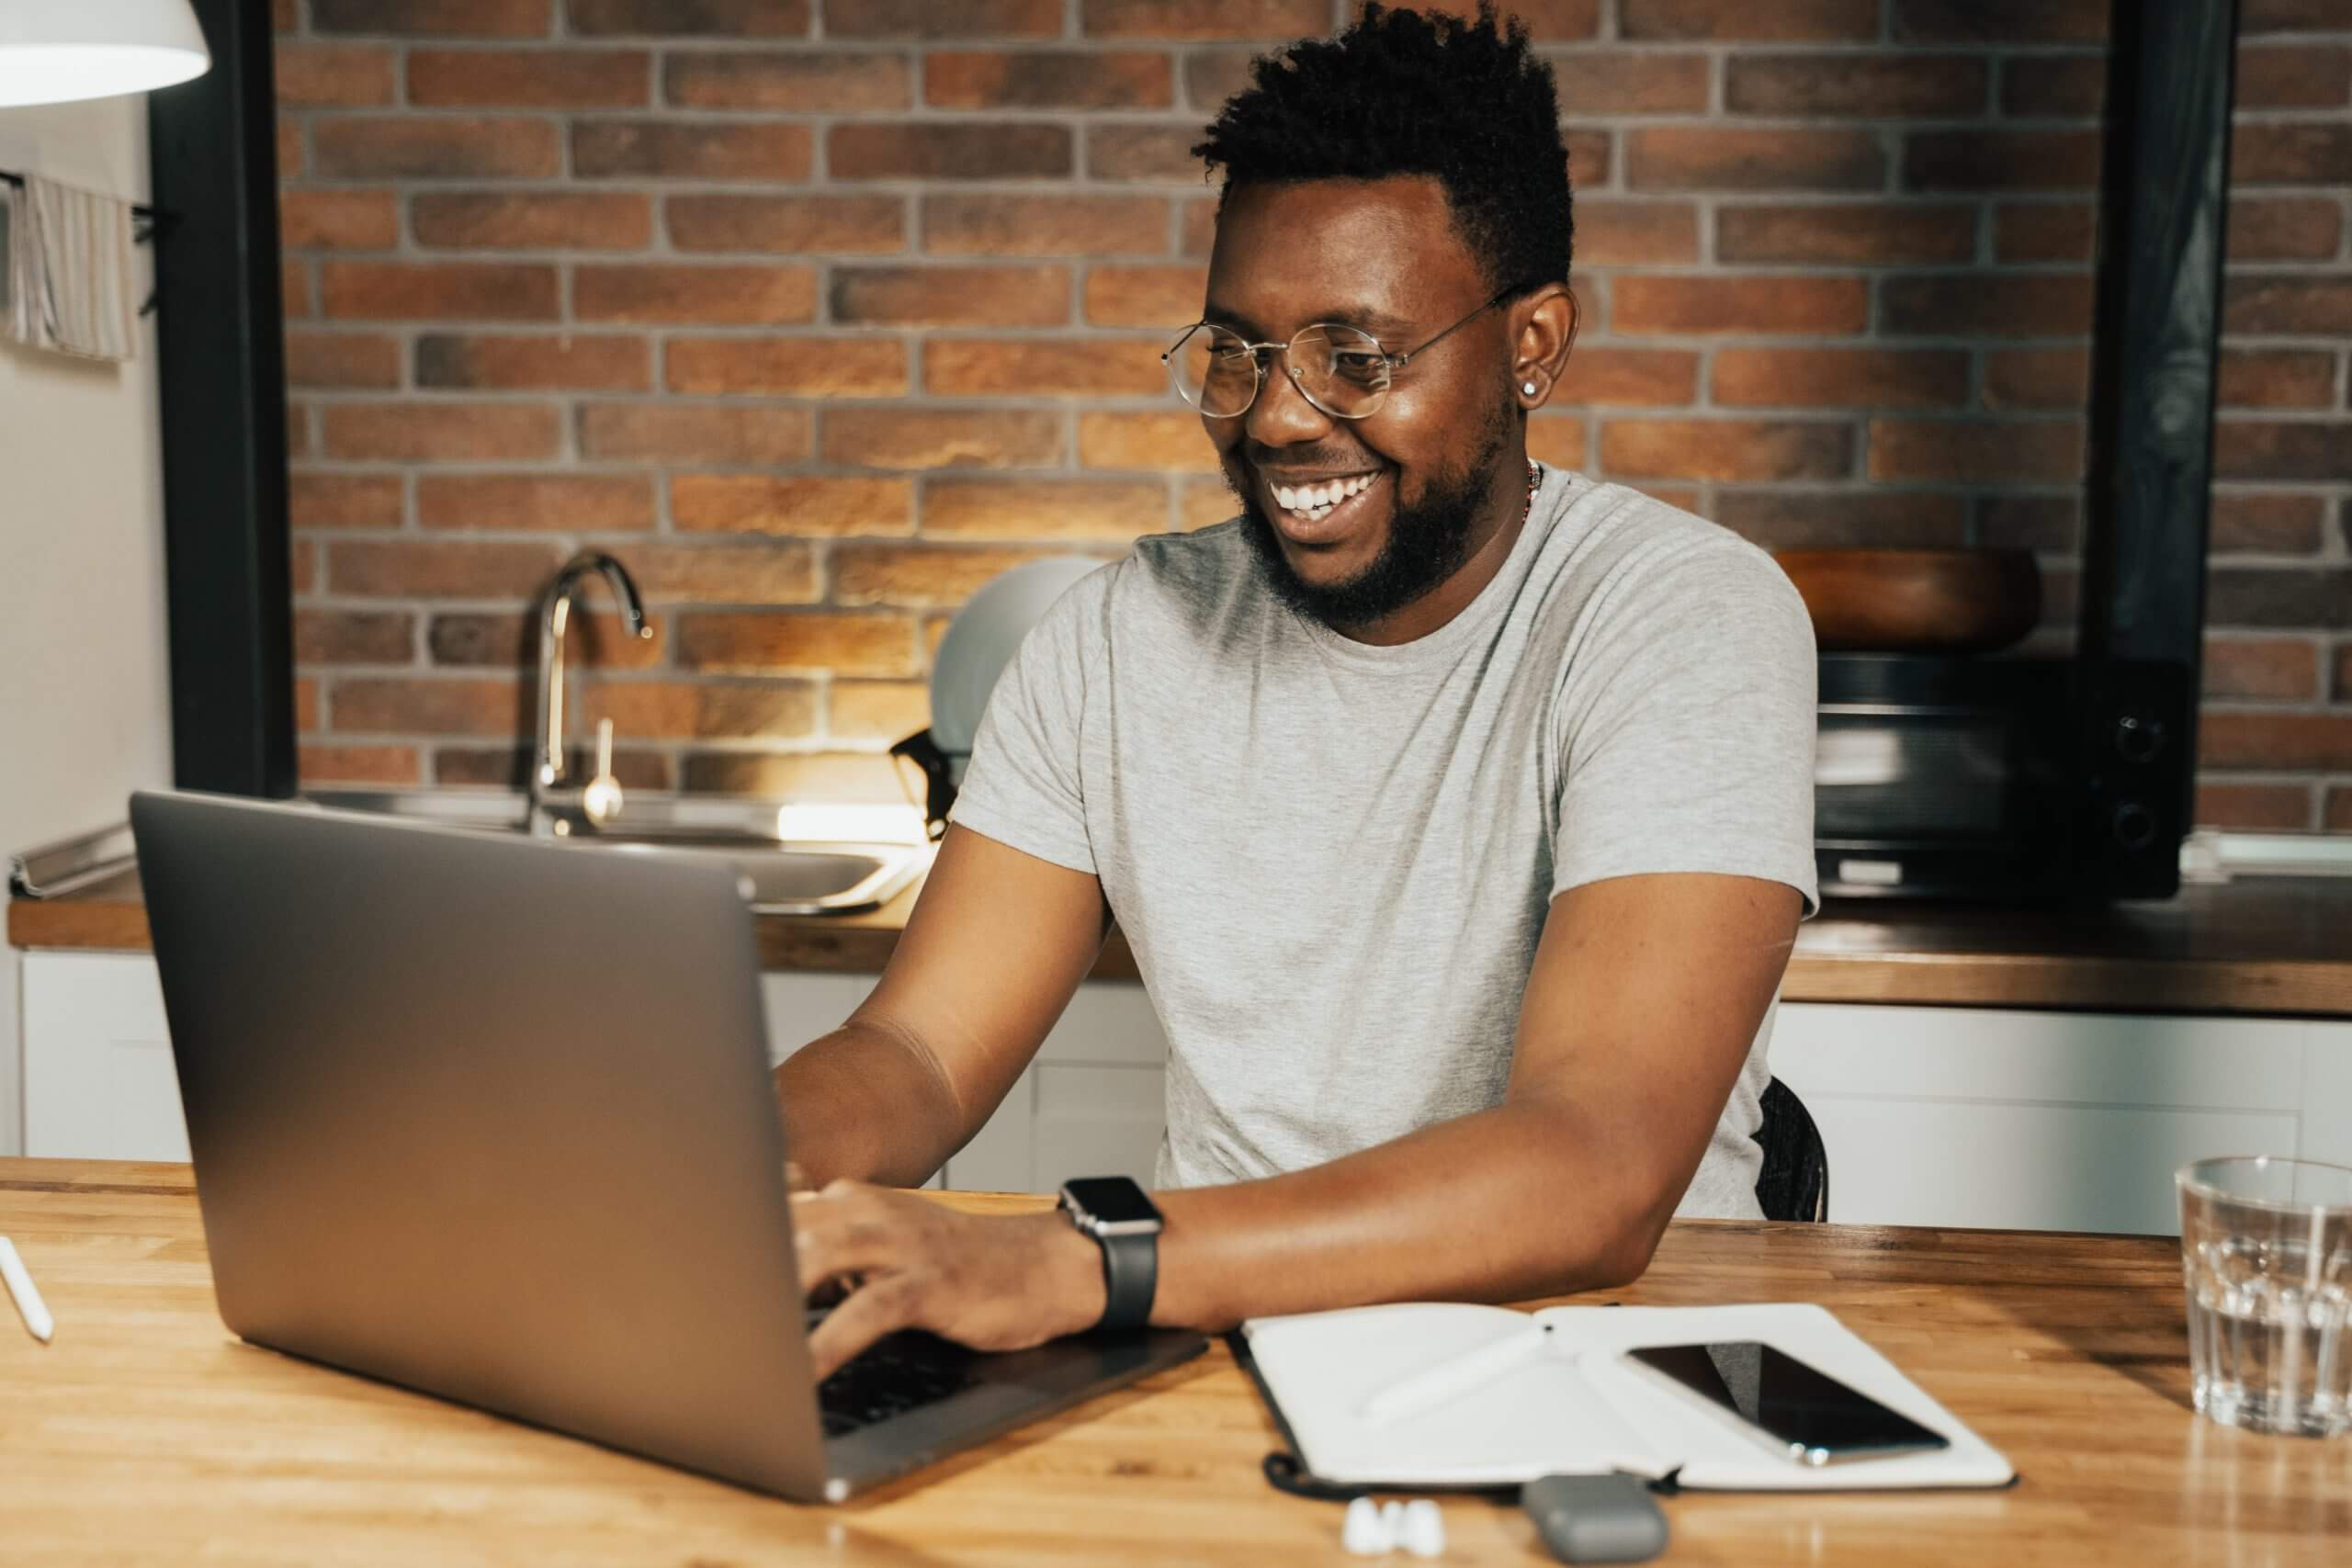 Happy black man working at a desk on his laptop